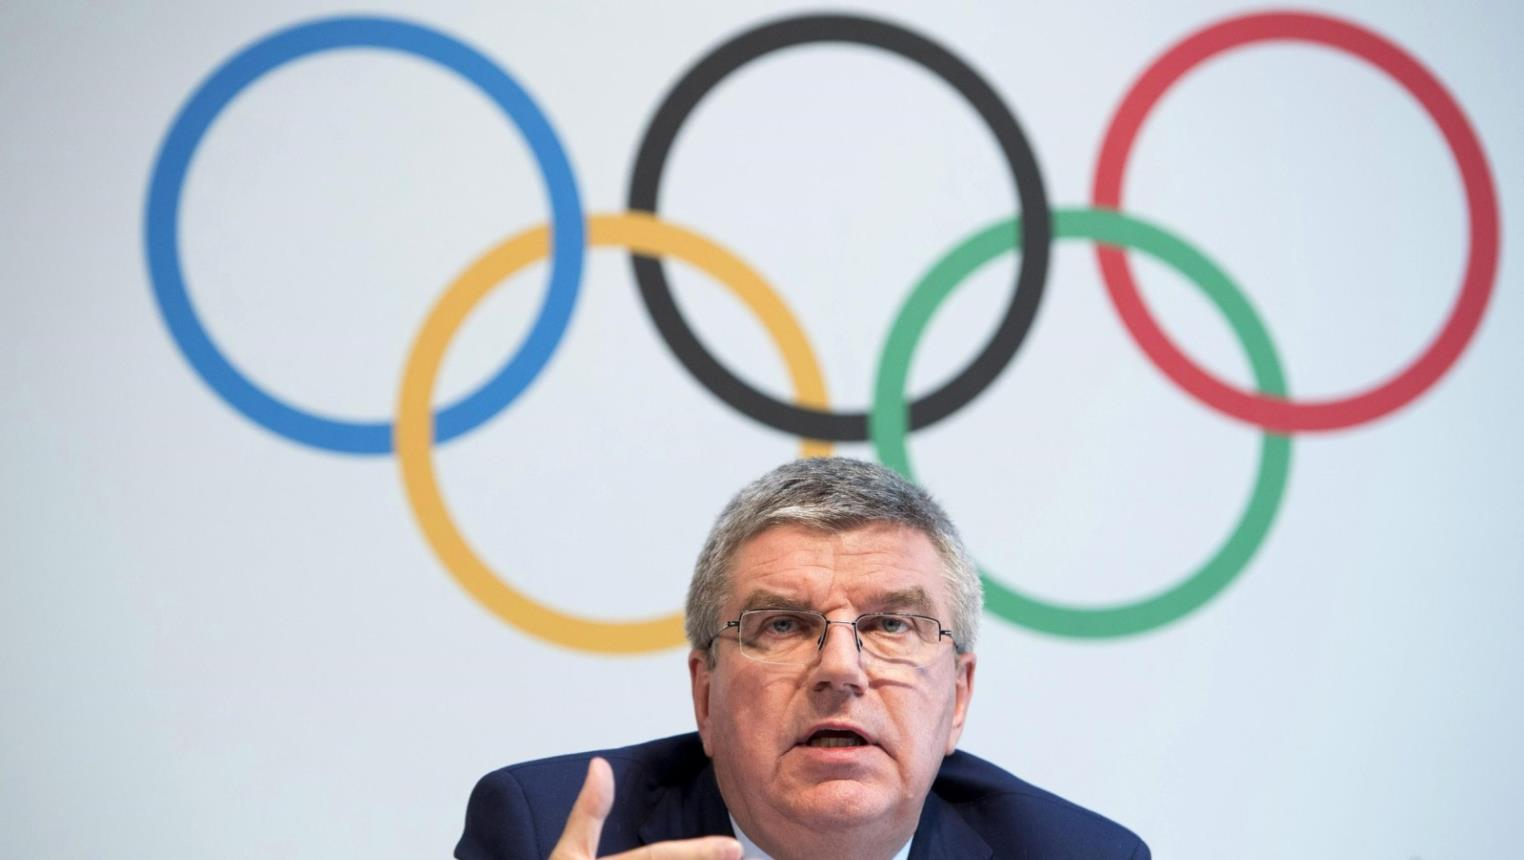 IOC: Pyeongchang ready for Games, ticket sales improving